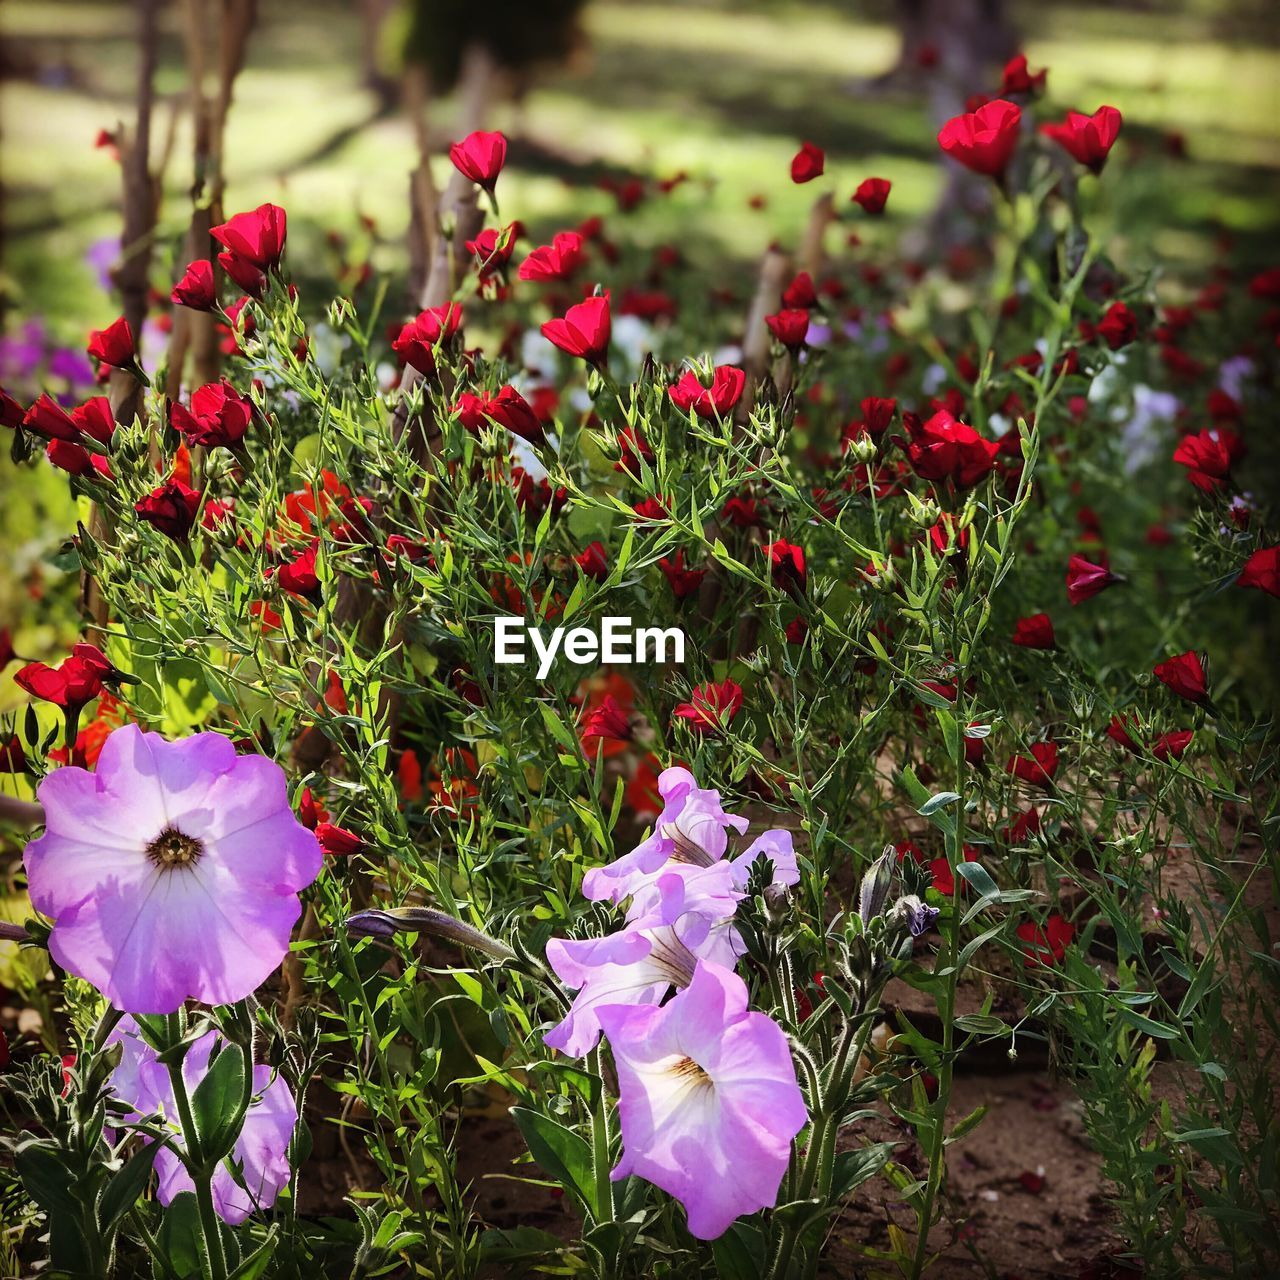 flower, growth, petal, nature, beauty in nature, purple, plant, red, no people, freshness, blooming, fragility, outdoors, flower head, day, grass, close-up, petunia